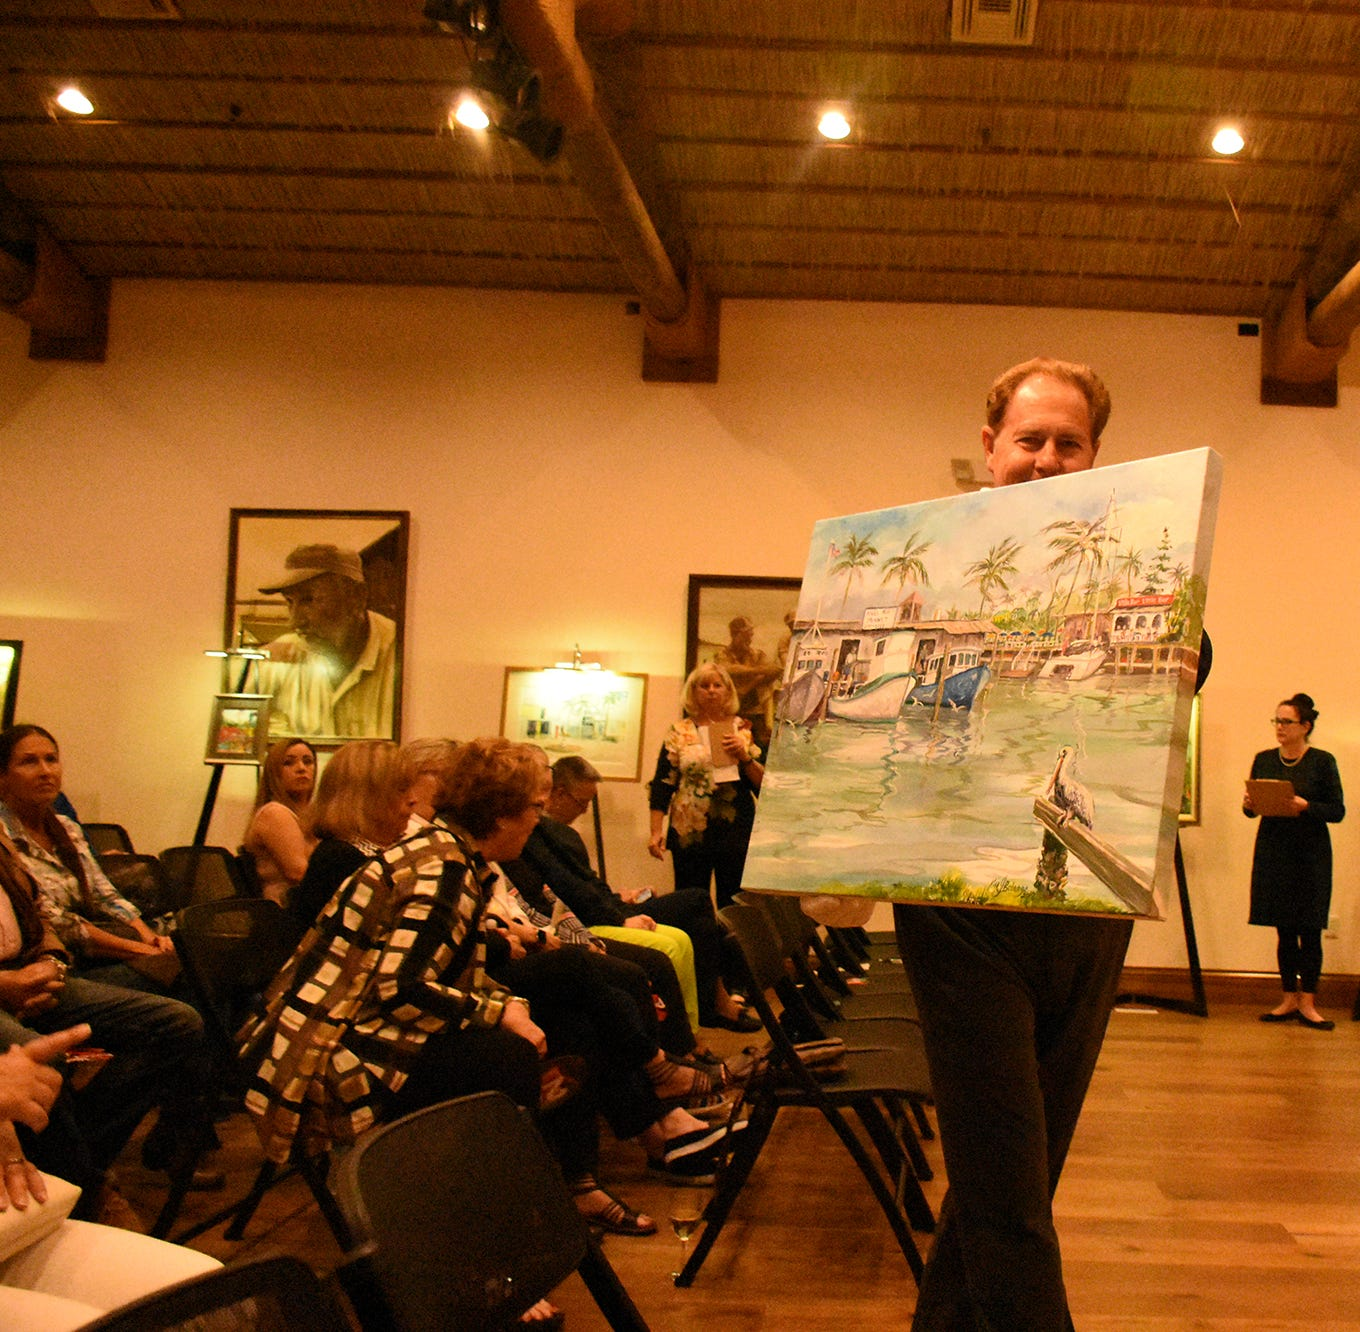 'Wet Paint' indeed: Artists try to stay dry picturing Marco for Chamber fundraiser